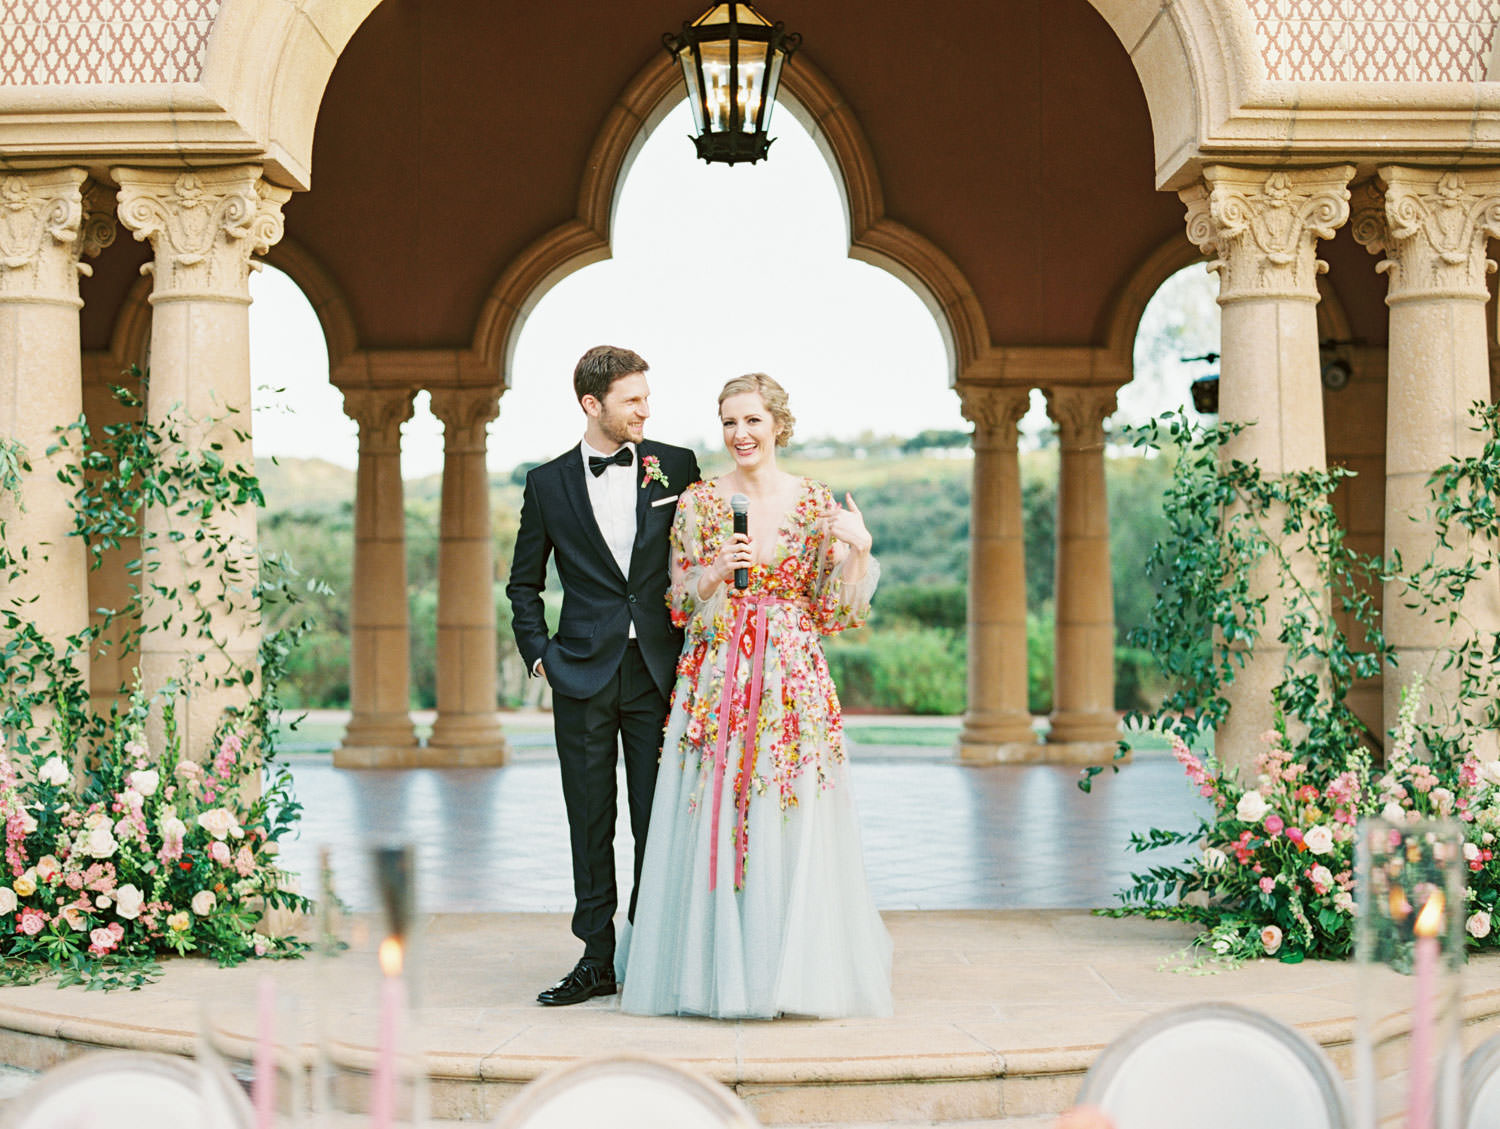 Bride and groom speech on a stage with columns covered in climbing smilax with arrangement at the bottom consisting of roses, ranunculus, daffodils, peonies, and sweet peas. Bride wearing colorful Marchesa wedding gown with blue, pink, yellow, green, and orange floral appliques. A Wedding Photographer's Fairmont Grand Del Mar Wedding